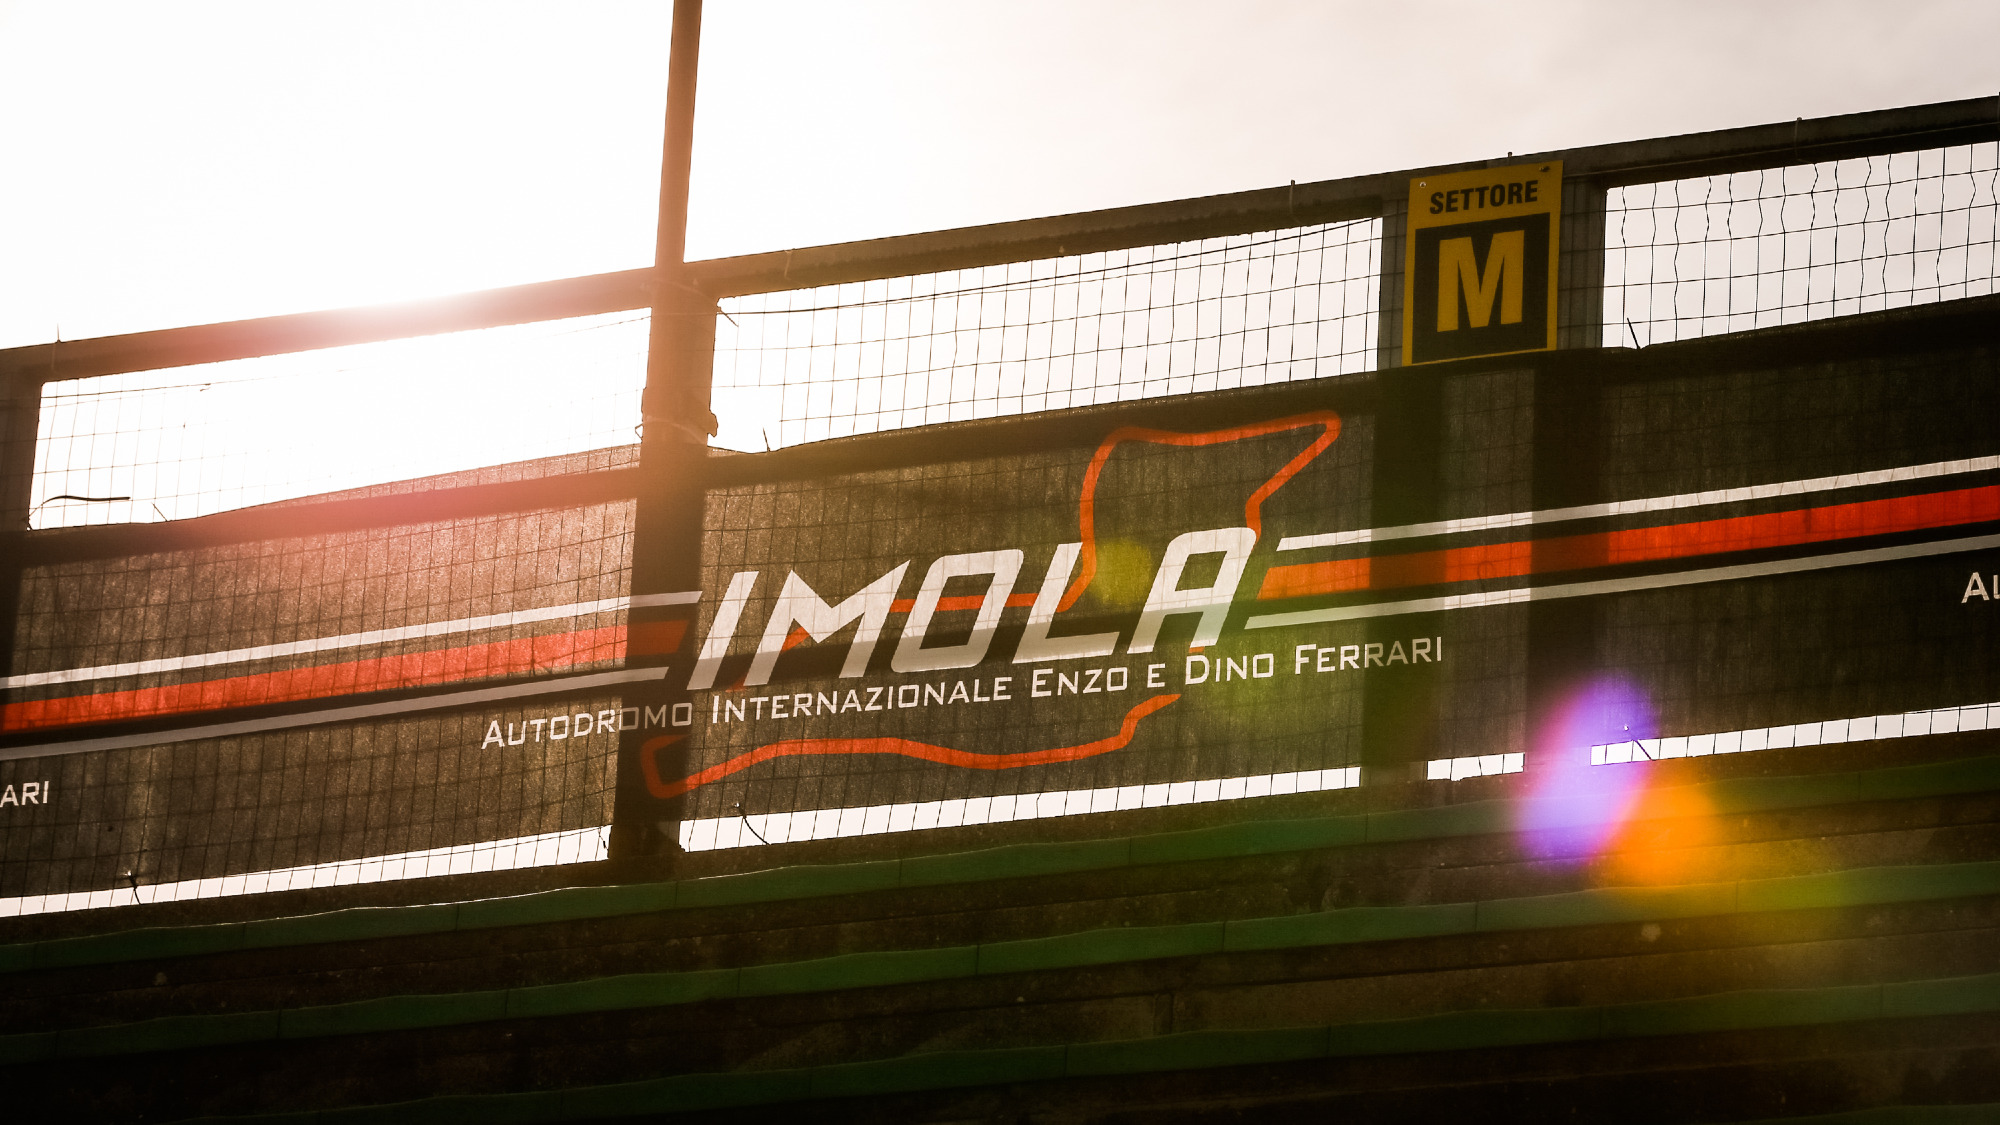 How to watch the 2021 Imola Grand Prix: start times and TV channels